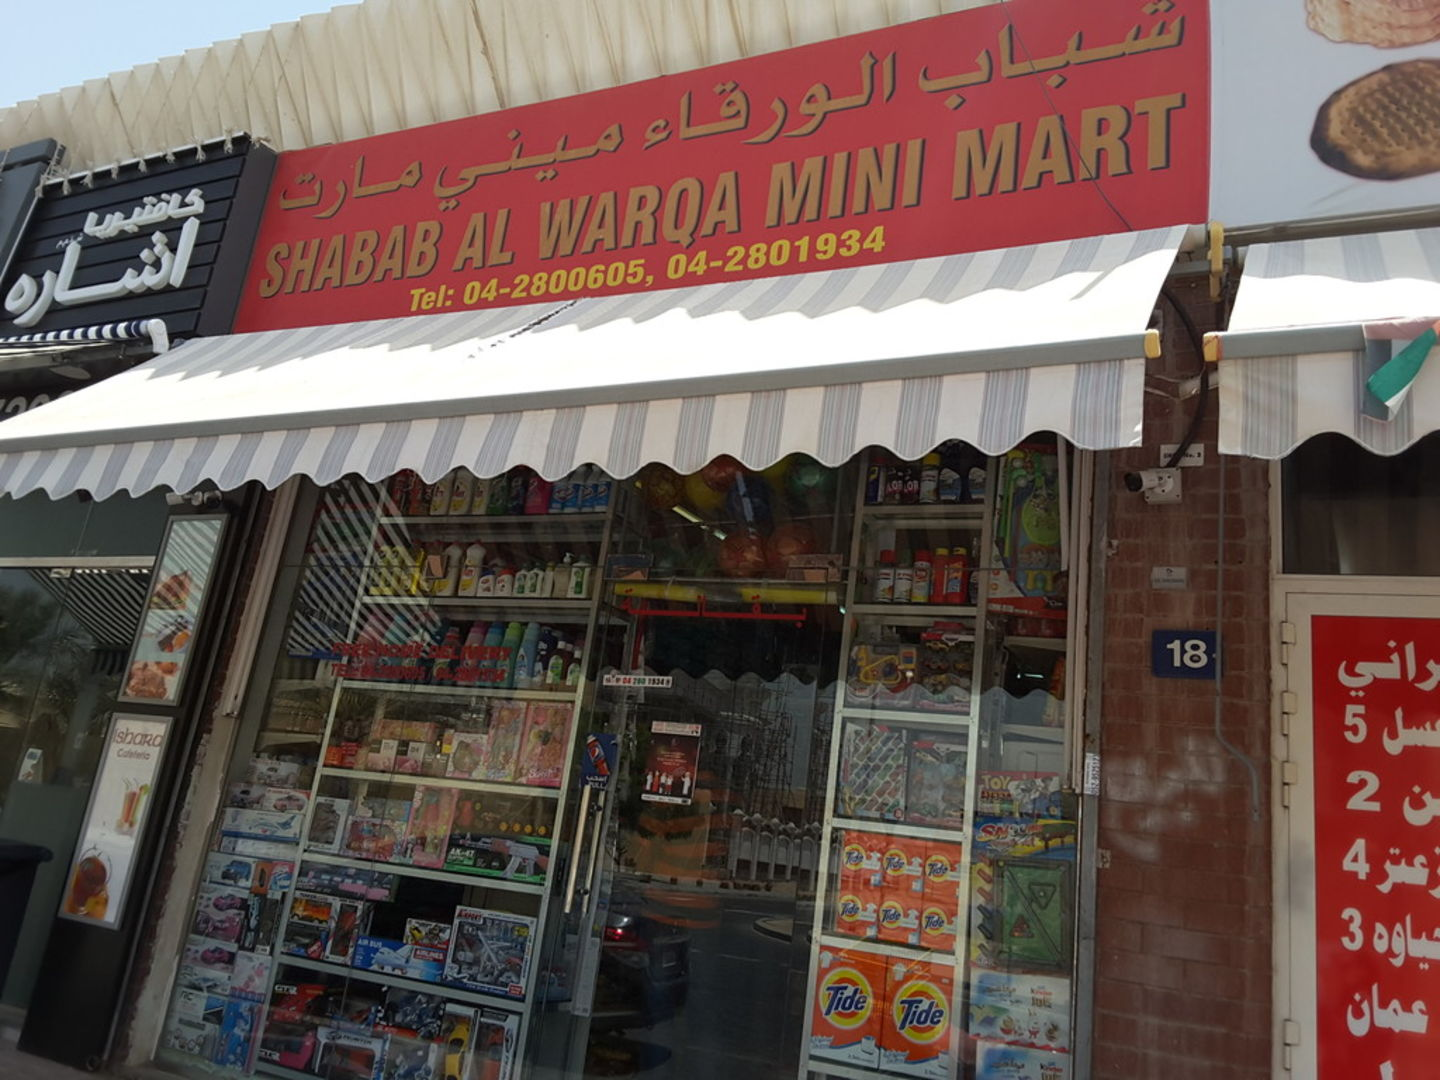 HiDubai-business-shabab-al-warqa-mini-mart-food-beverage-supermarkets-hypermarkets-grocery-stores-al-warqaa-2-dubai-2